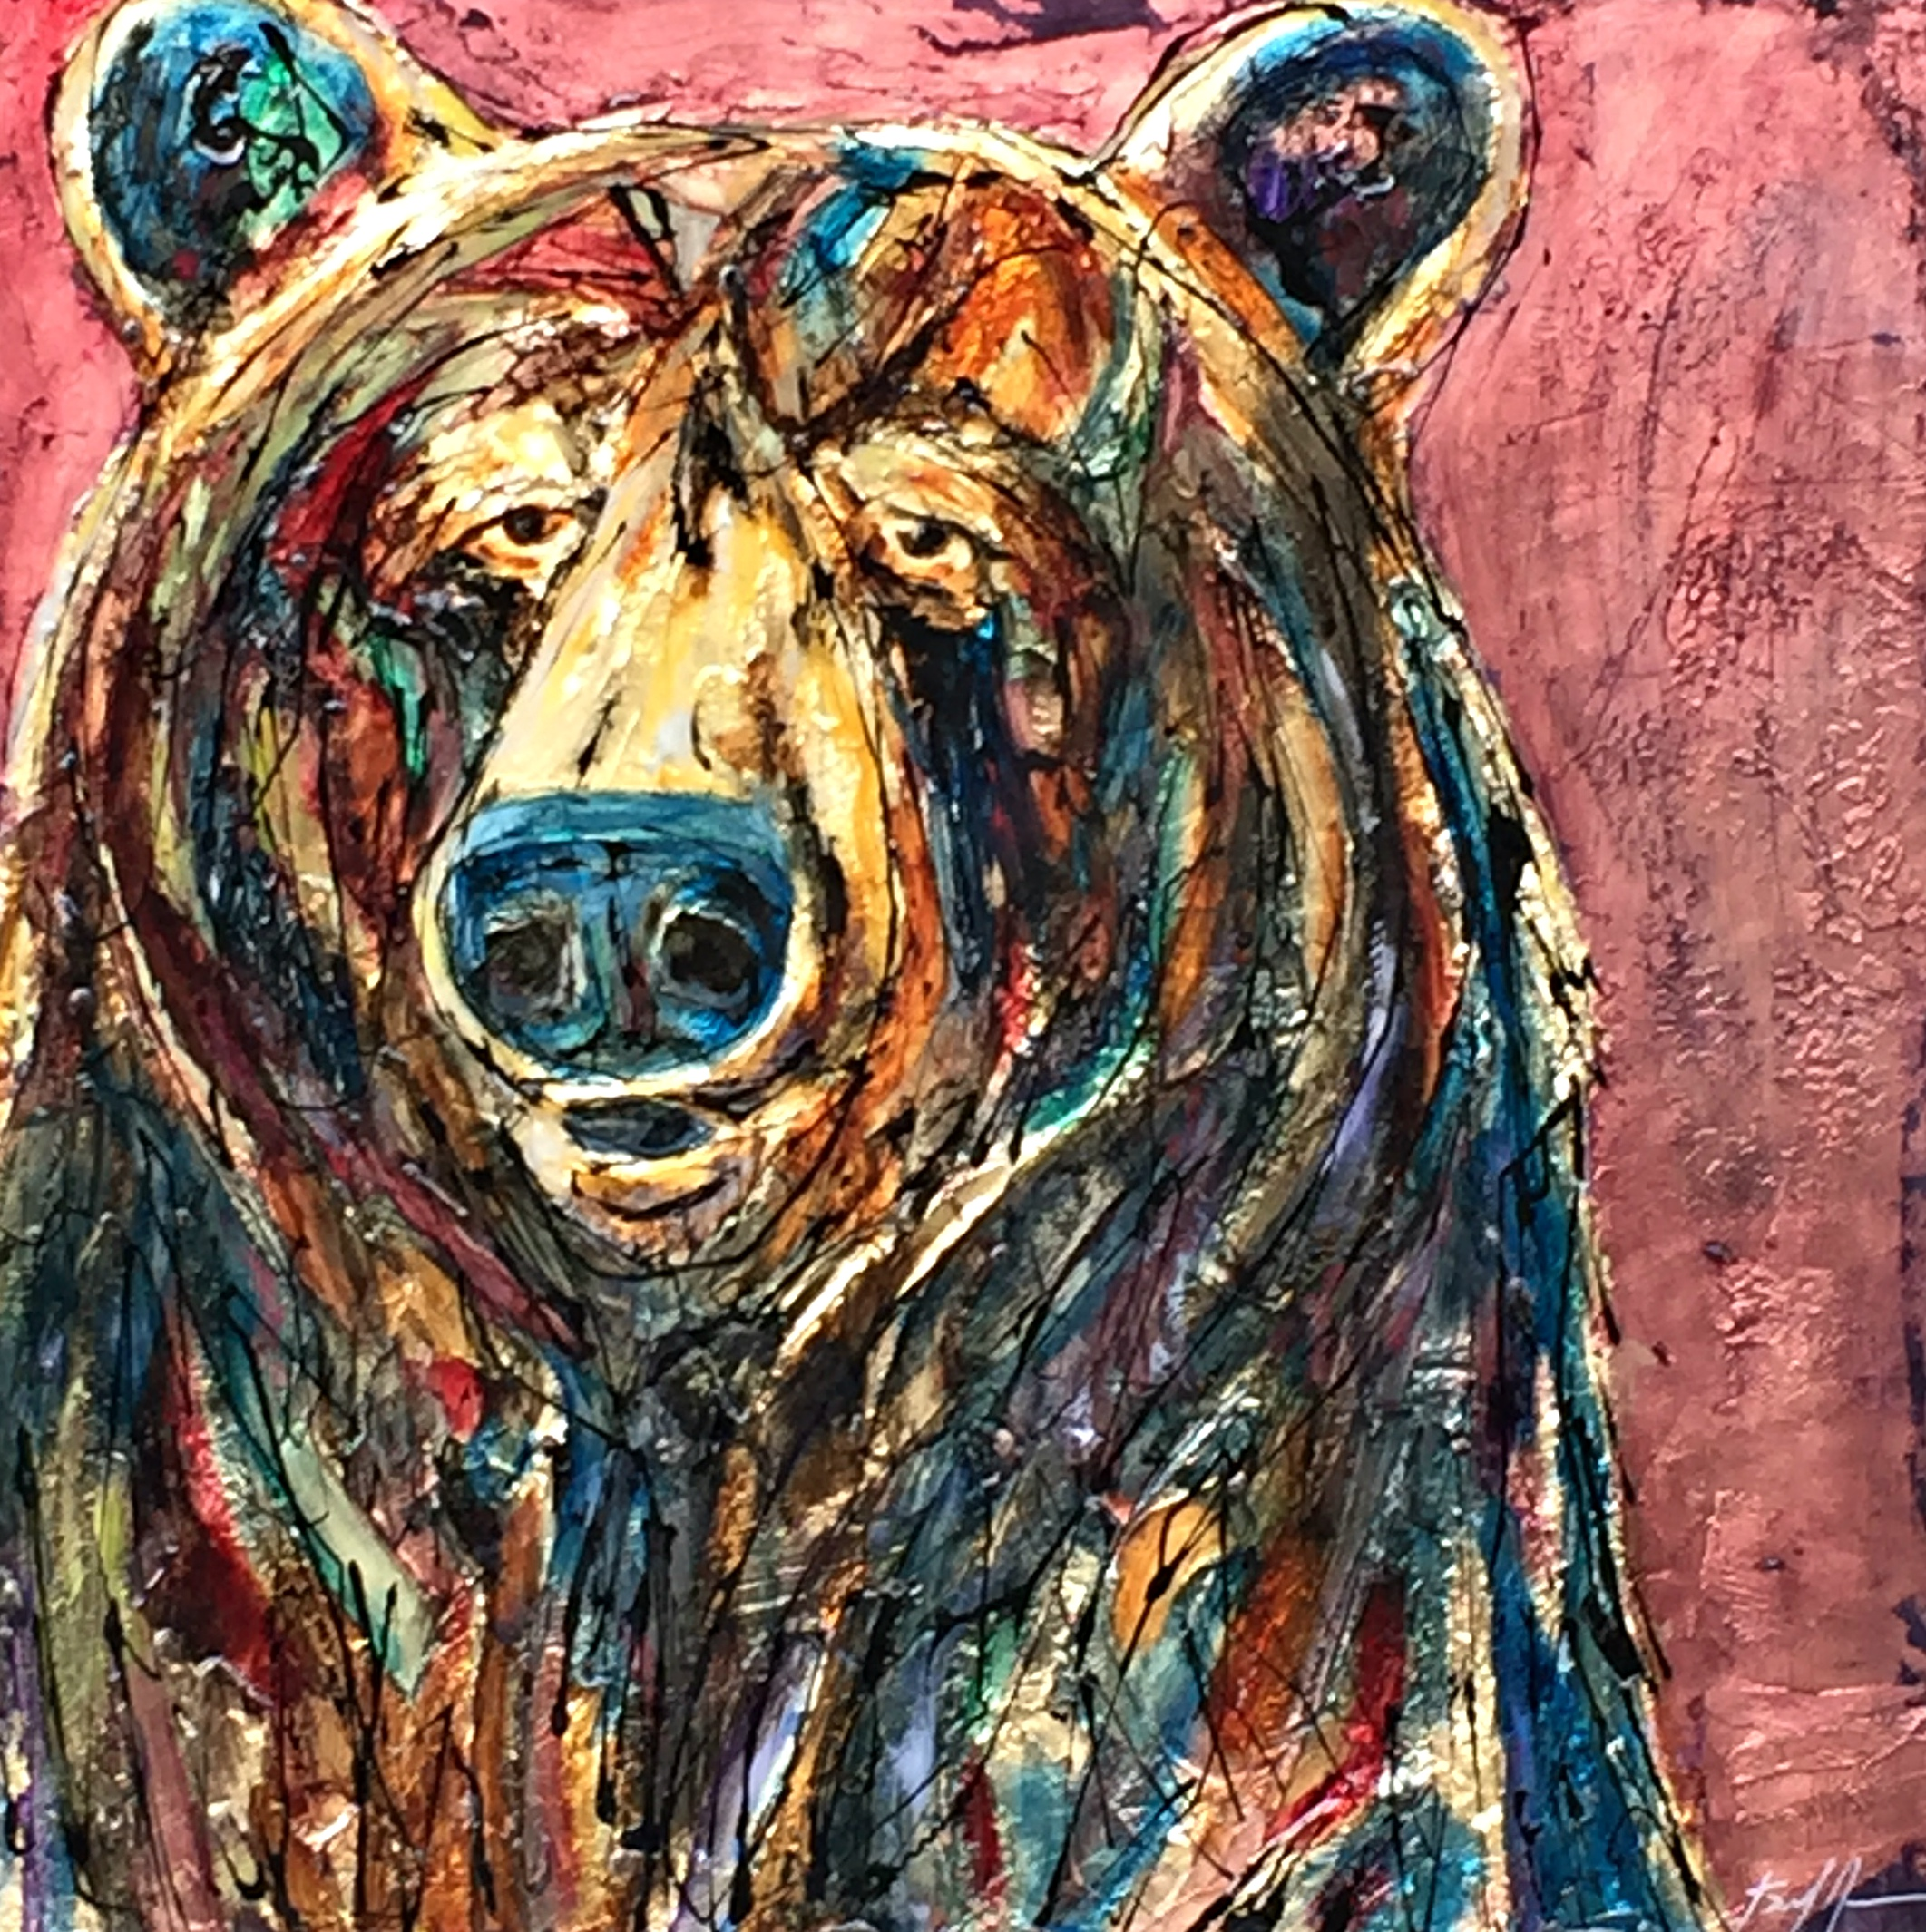 Some Vocabulary, mixed media bear painting by David Zimmerman | Effusion Art Gallery + Cast Glass Studio, Invermere BC